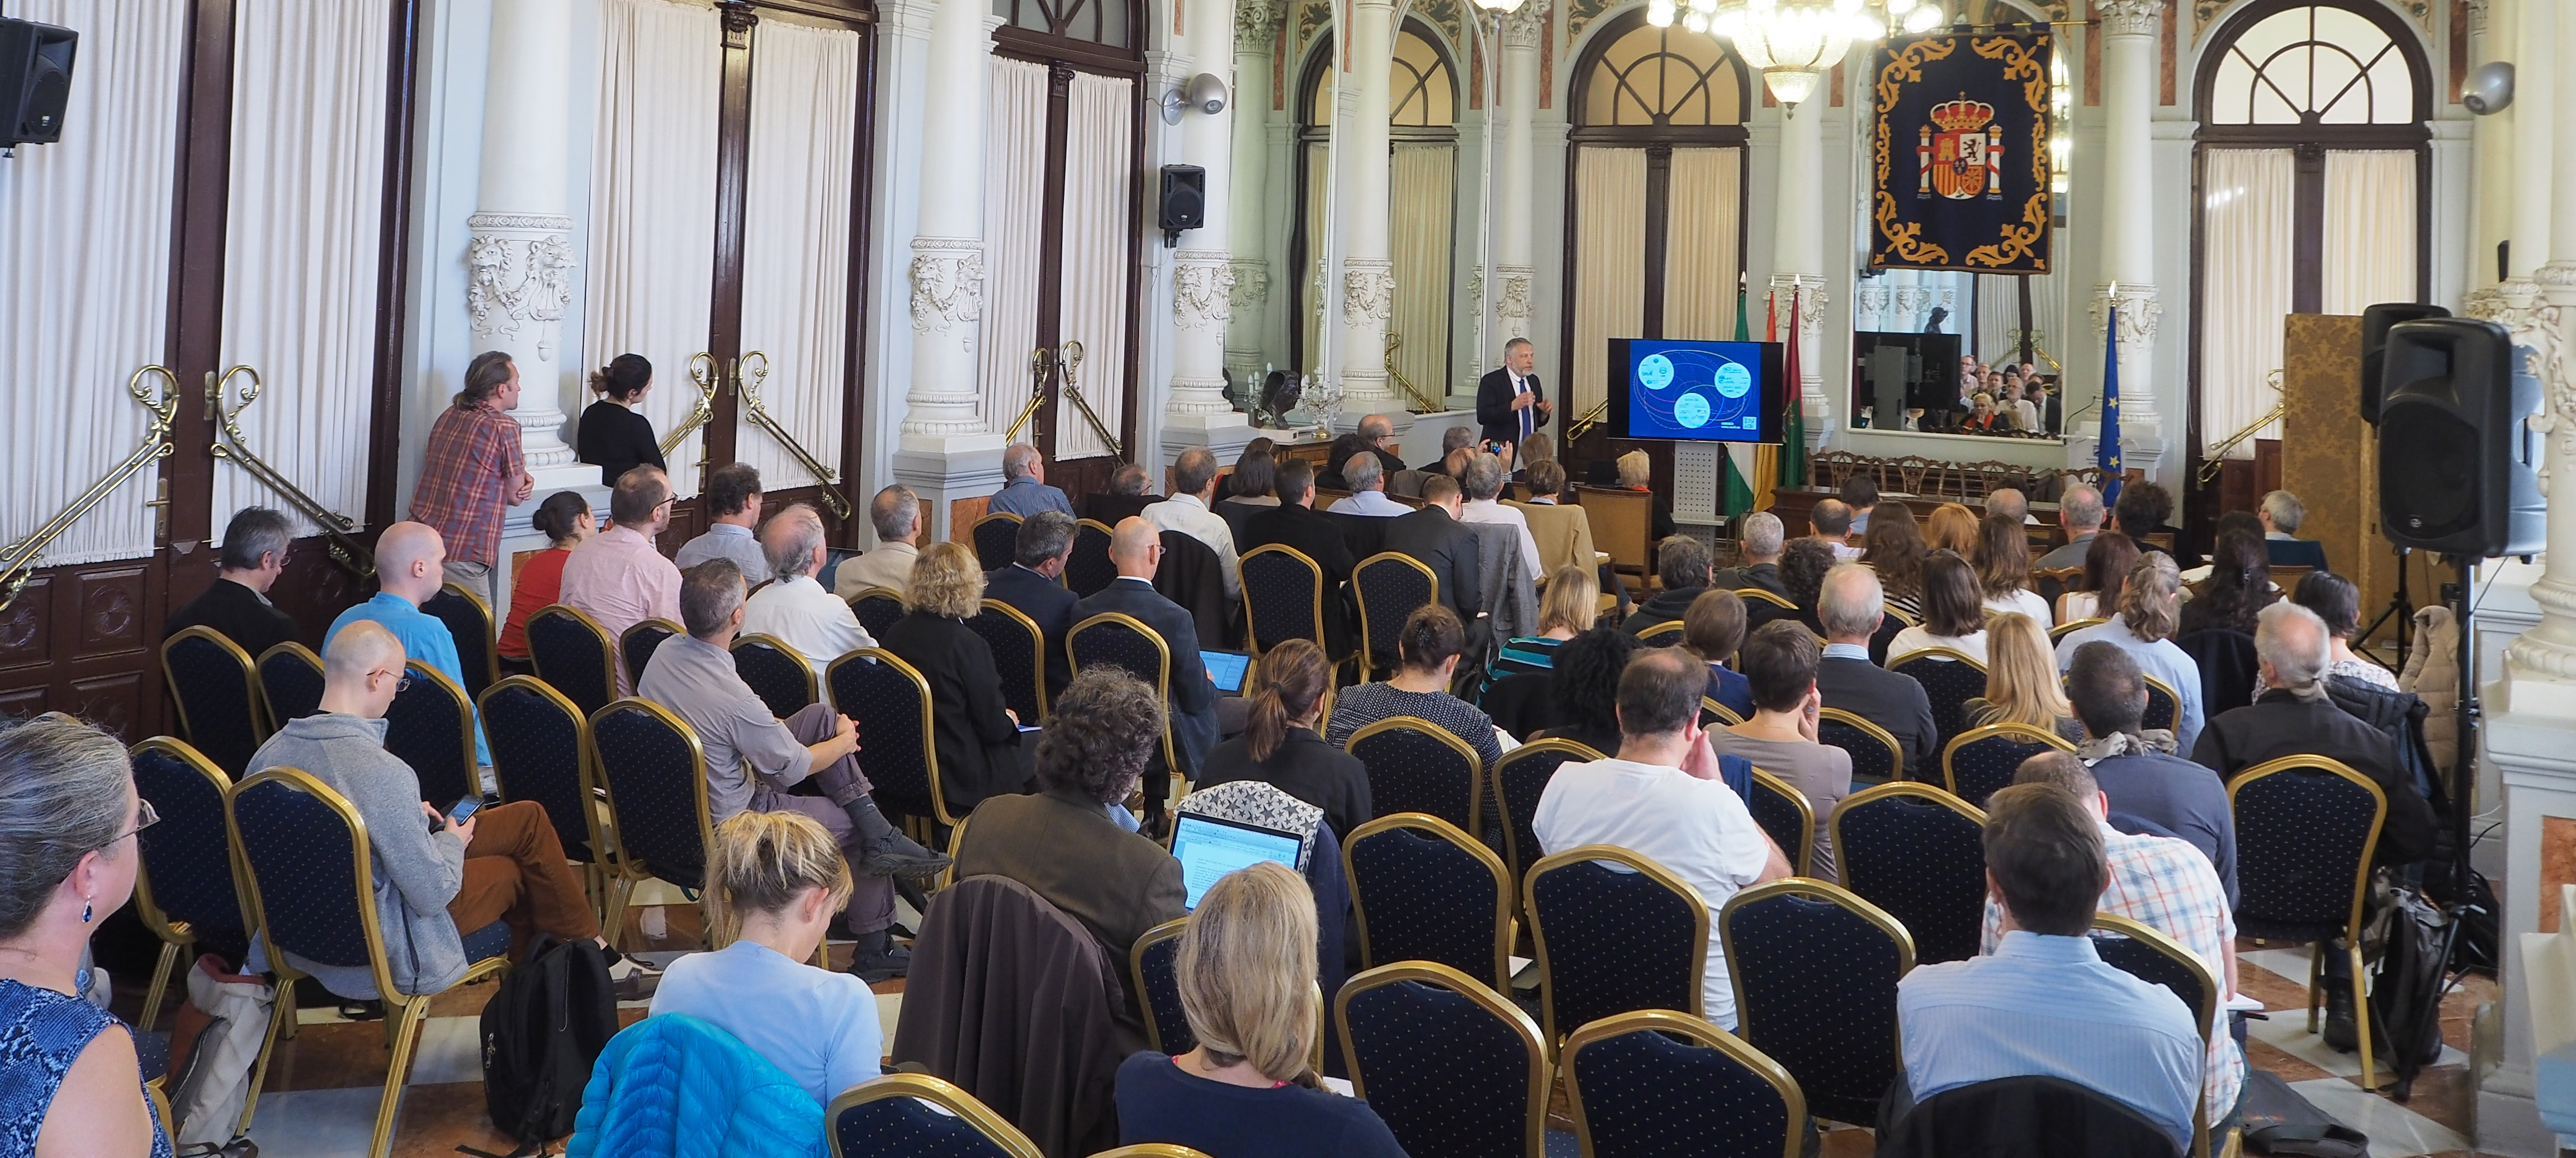 Joint workshop of ESFRI Environment Strategy Working Group and ENVRI community on the Landscape of Environmental Research Infrastructures in the beautiful city hall of Malaga. Photo credit: ENVRIplus.